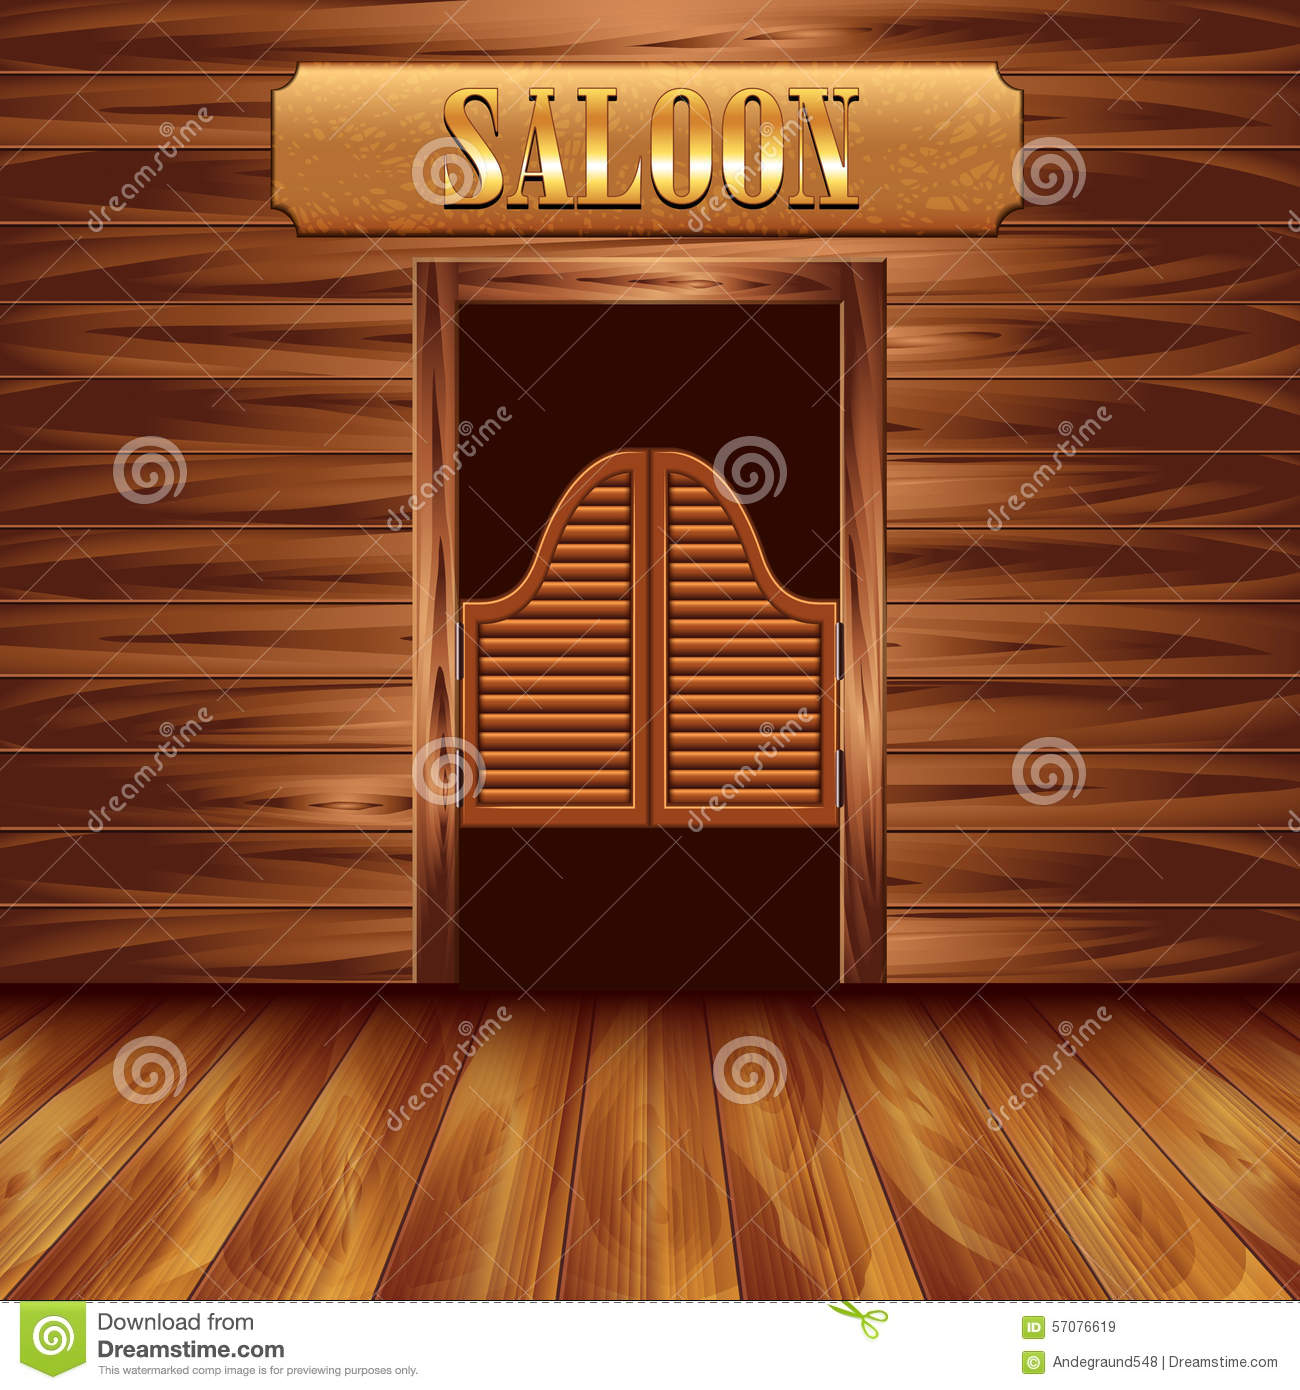 Animation of swinging doors